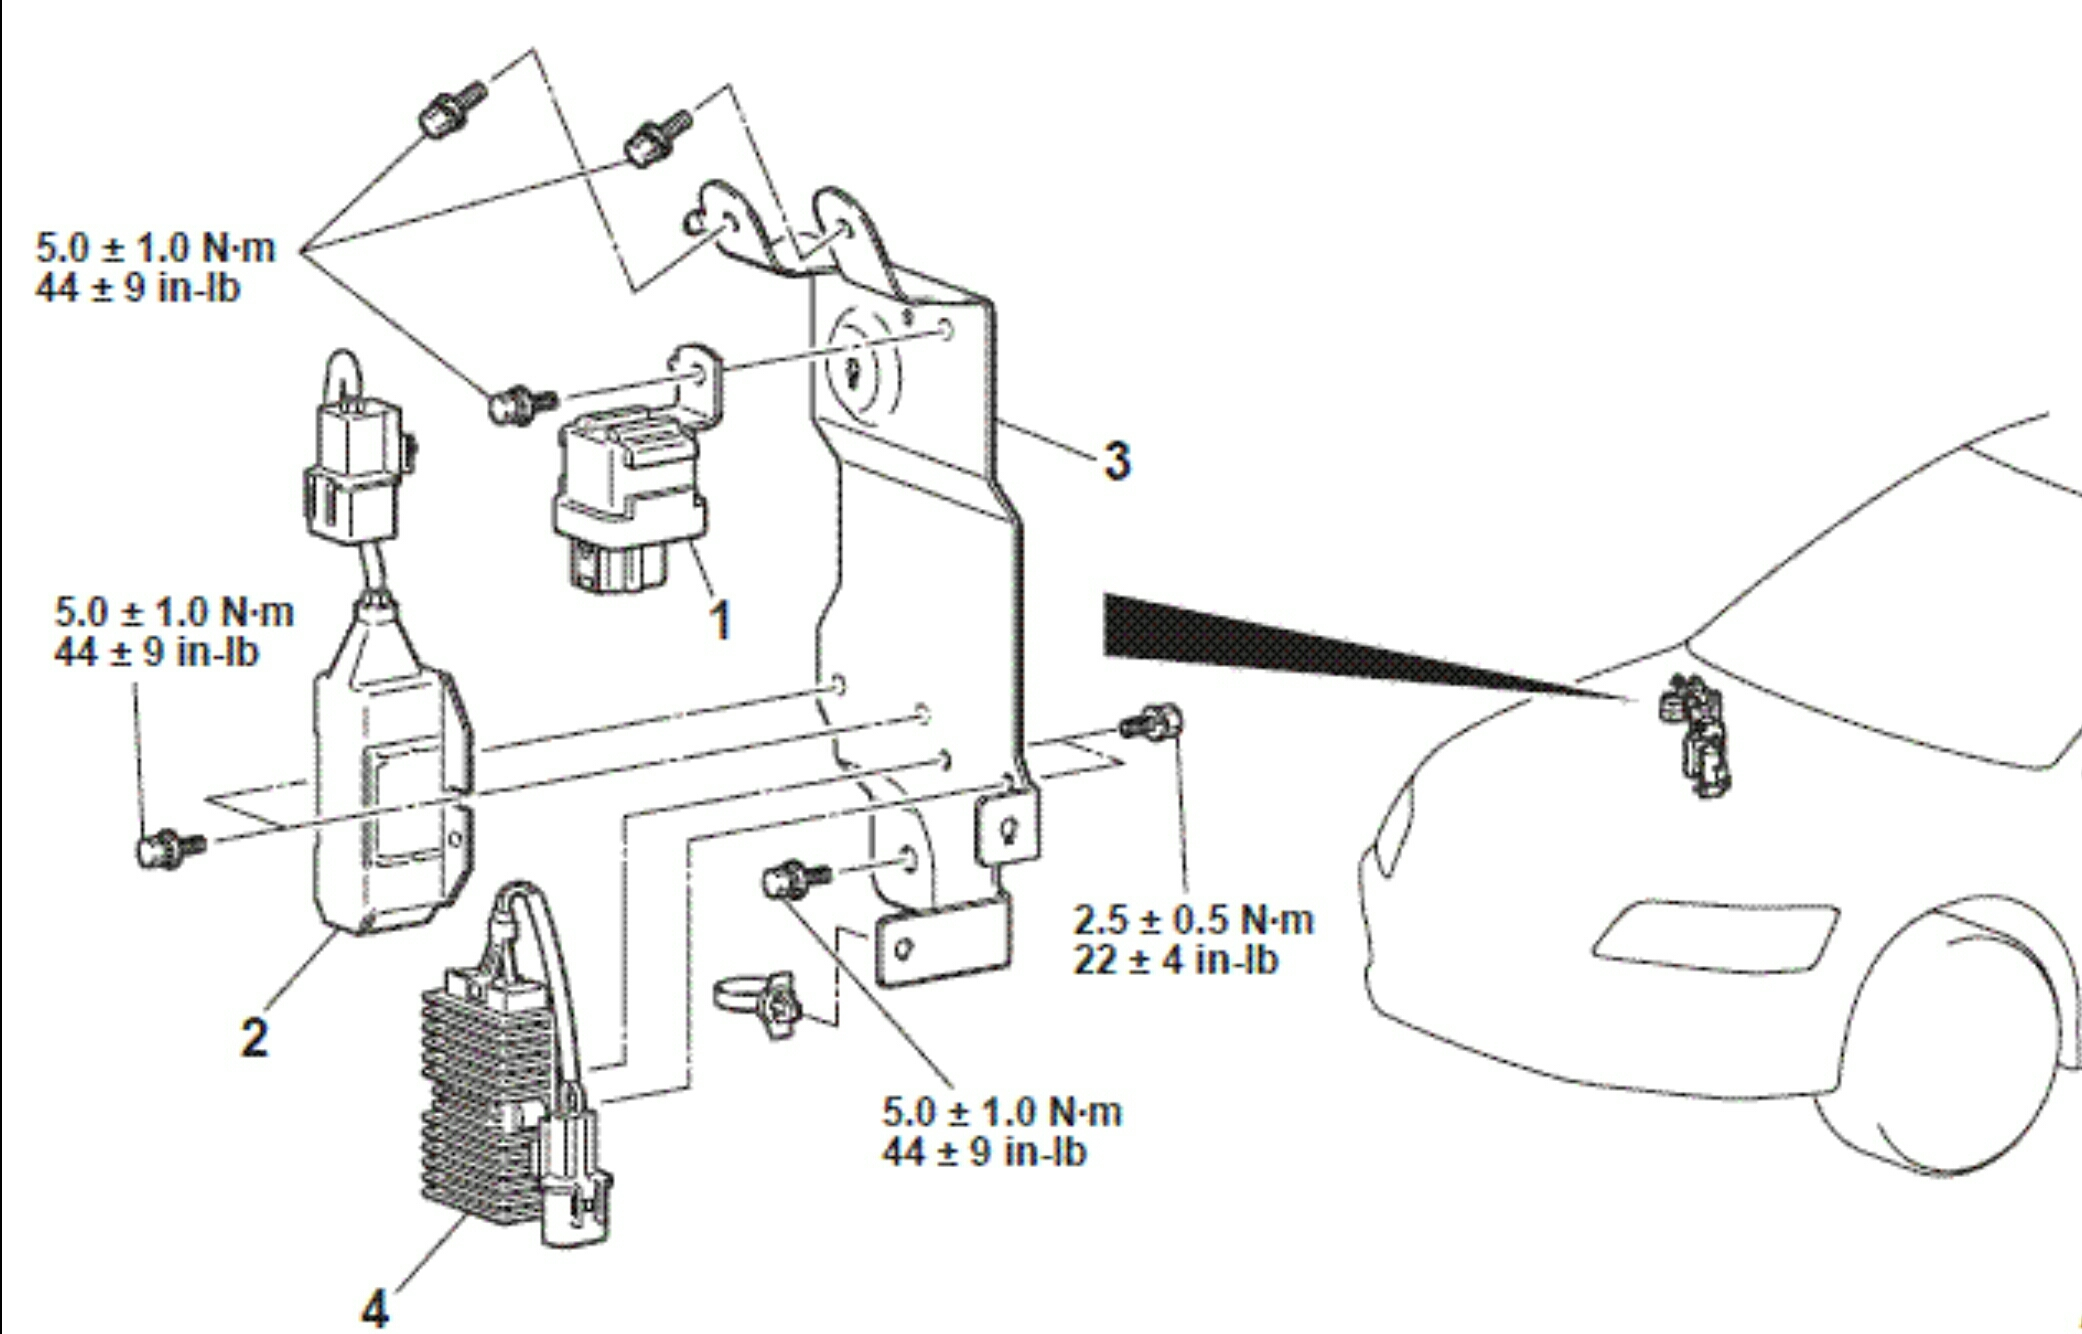 mitsubishi evo engine diagram in addition evo 8 vacuum diagram also